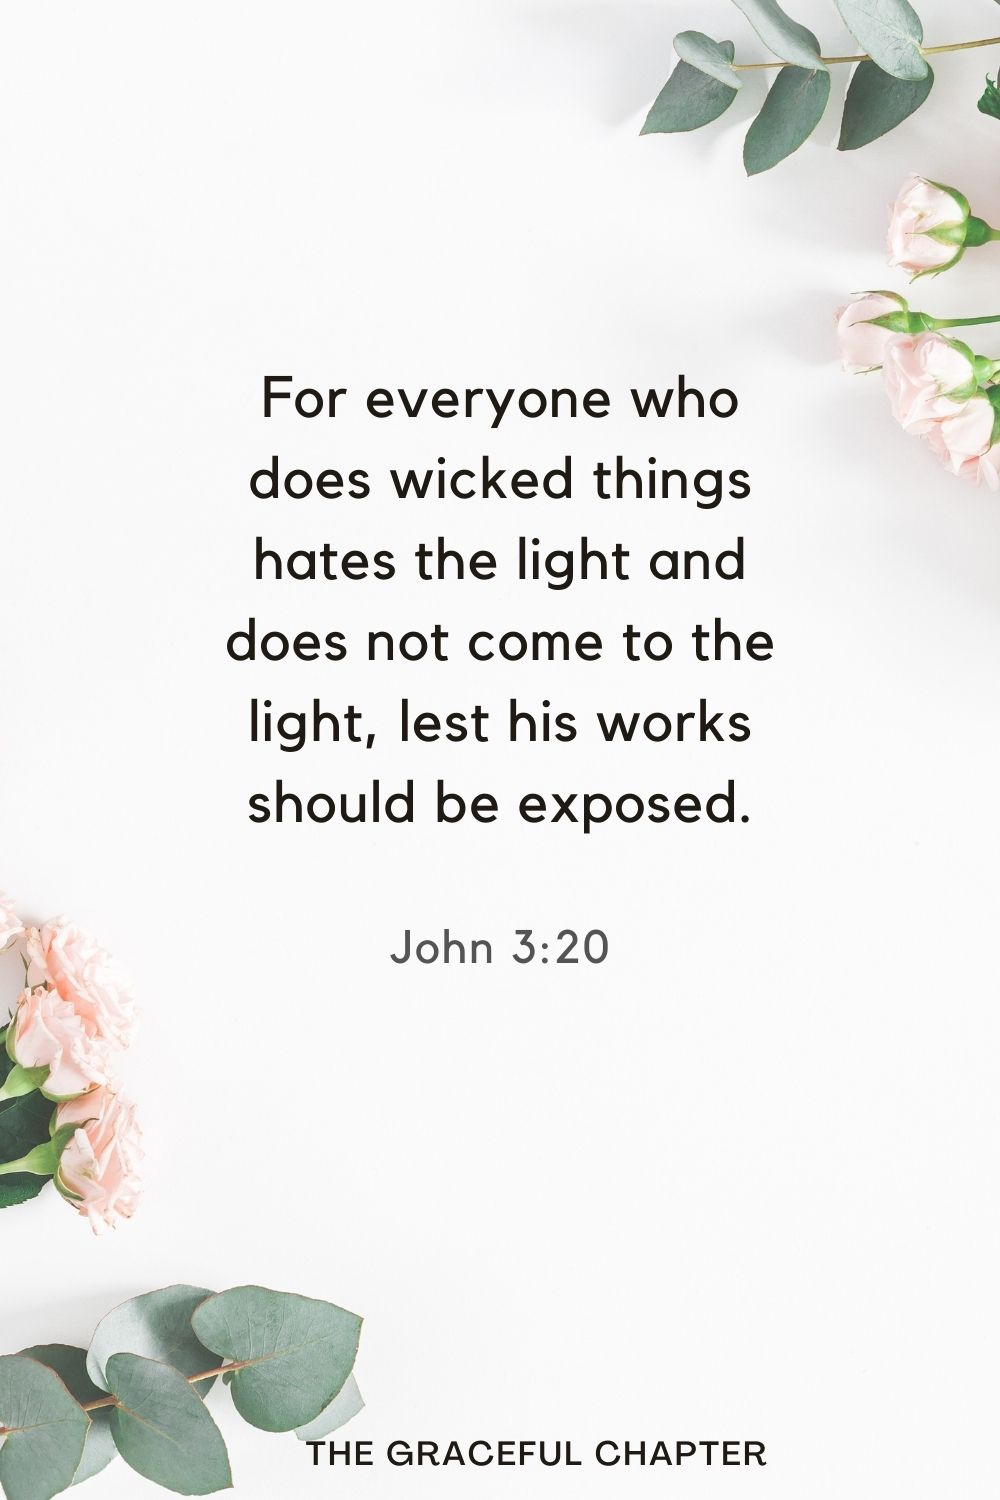 For everyone who does wicked things hates the light and does not come to the light, lest his works should be exposed. John 3:20